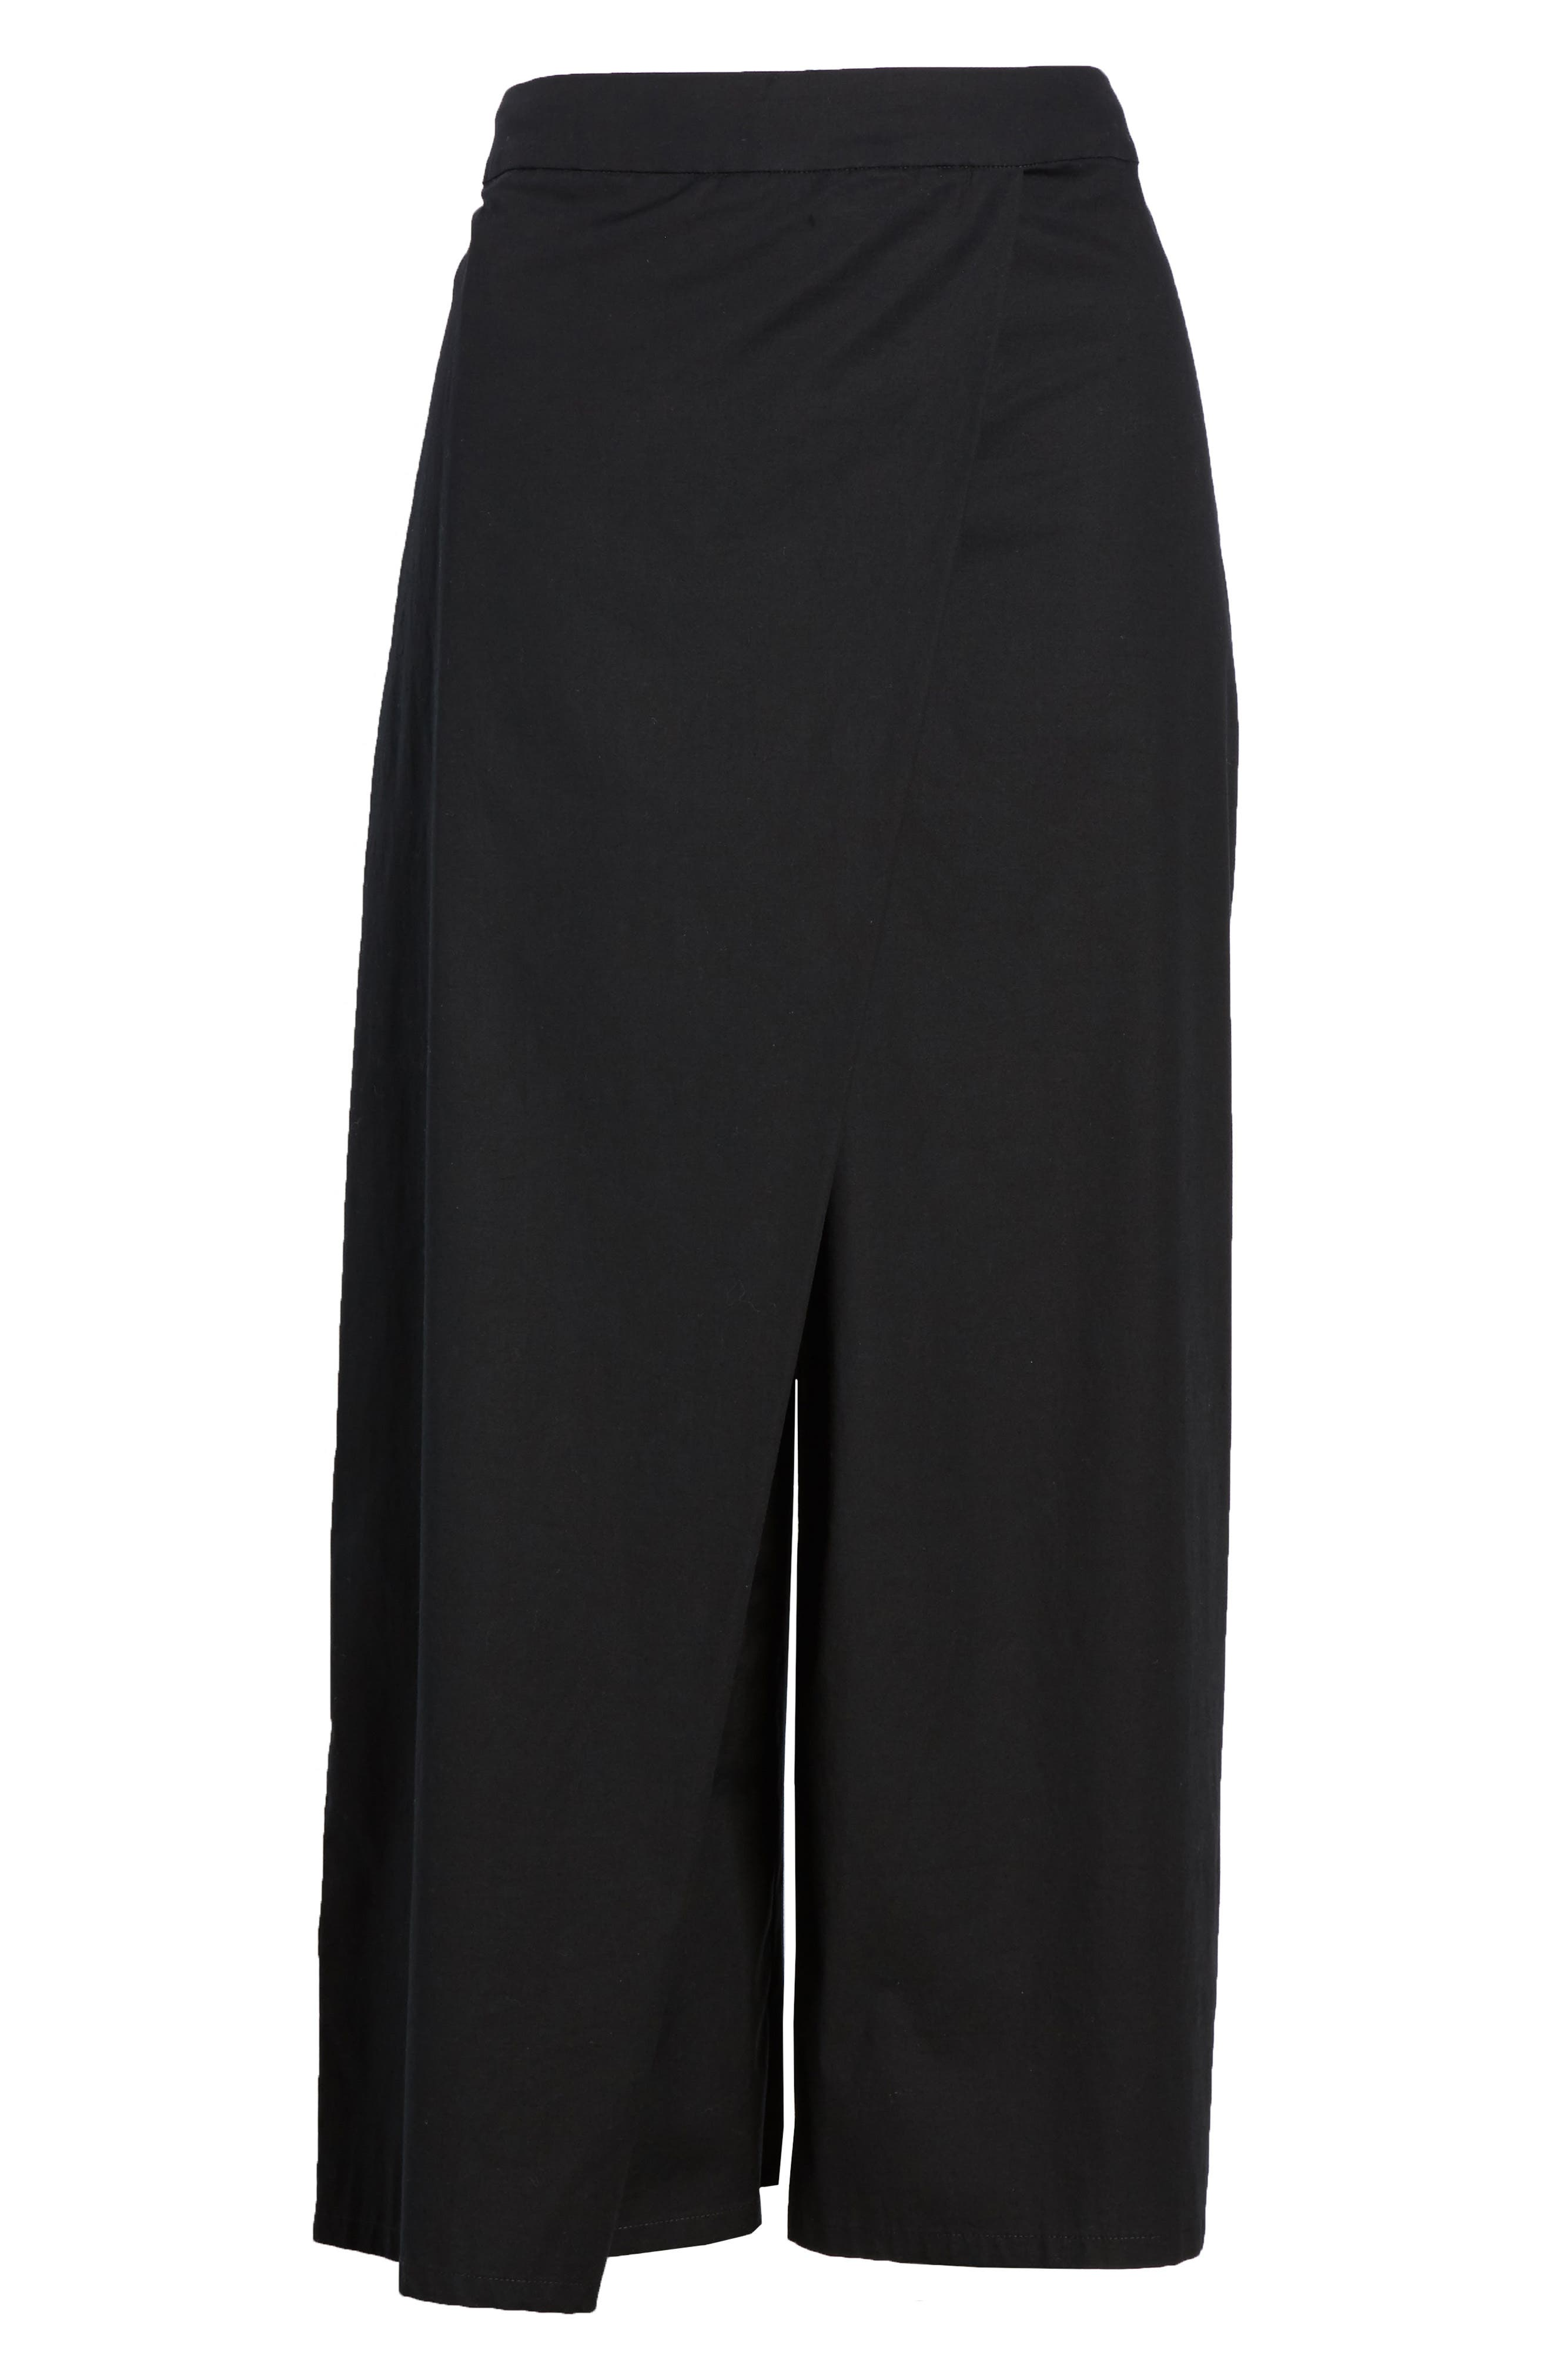 Foldover Wide Leg Crop Pants,                             Alternate thumbnail 7, color,                             001